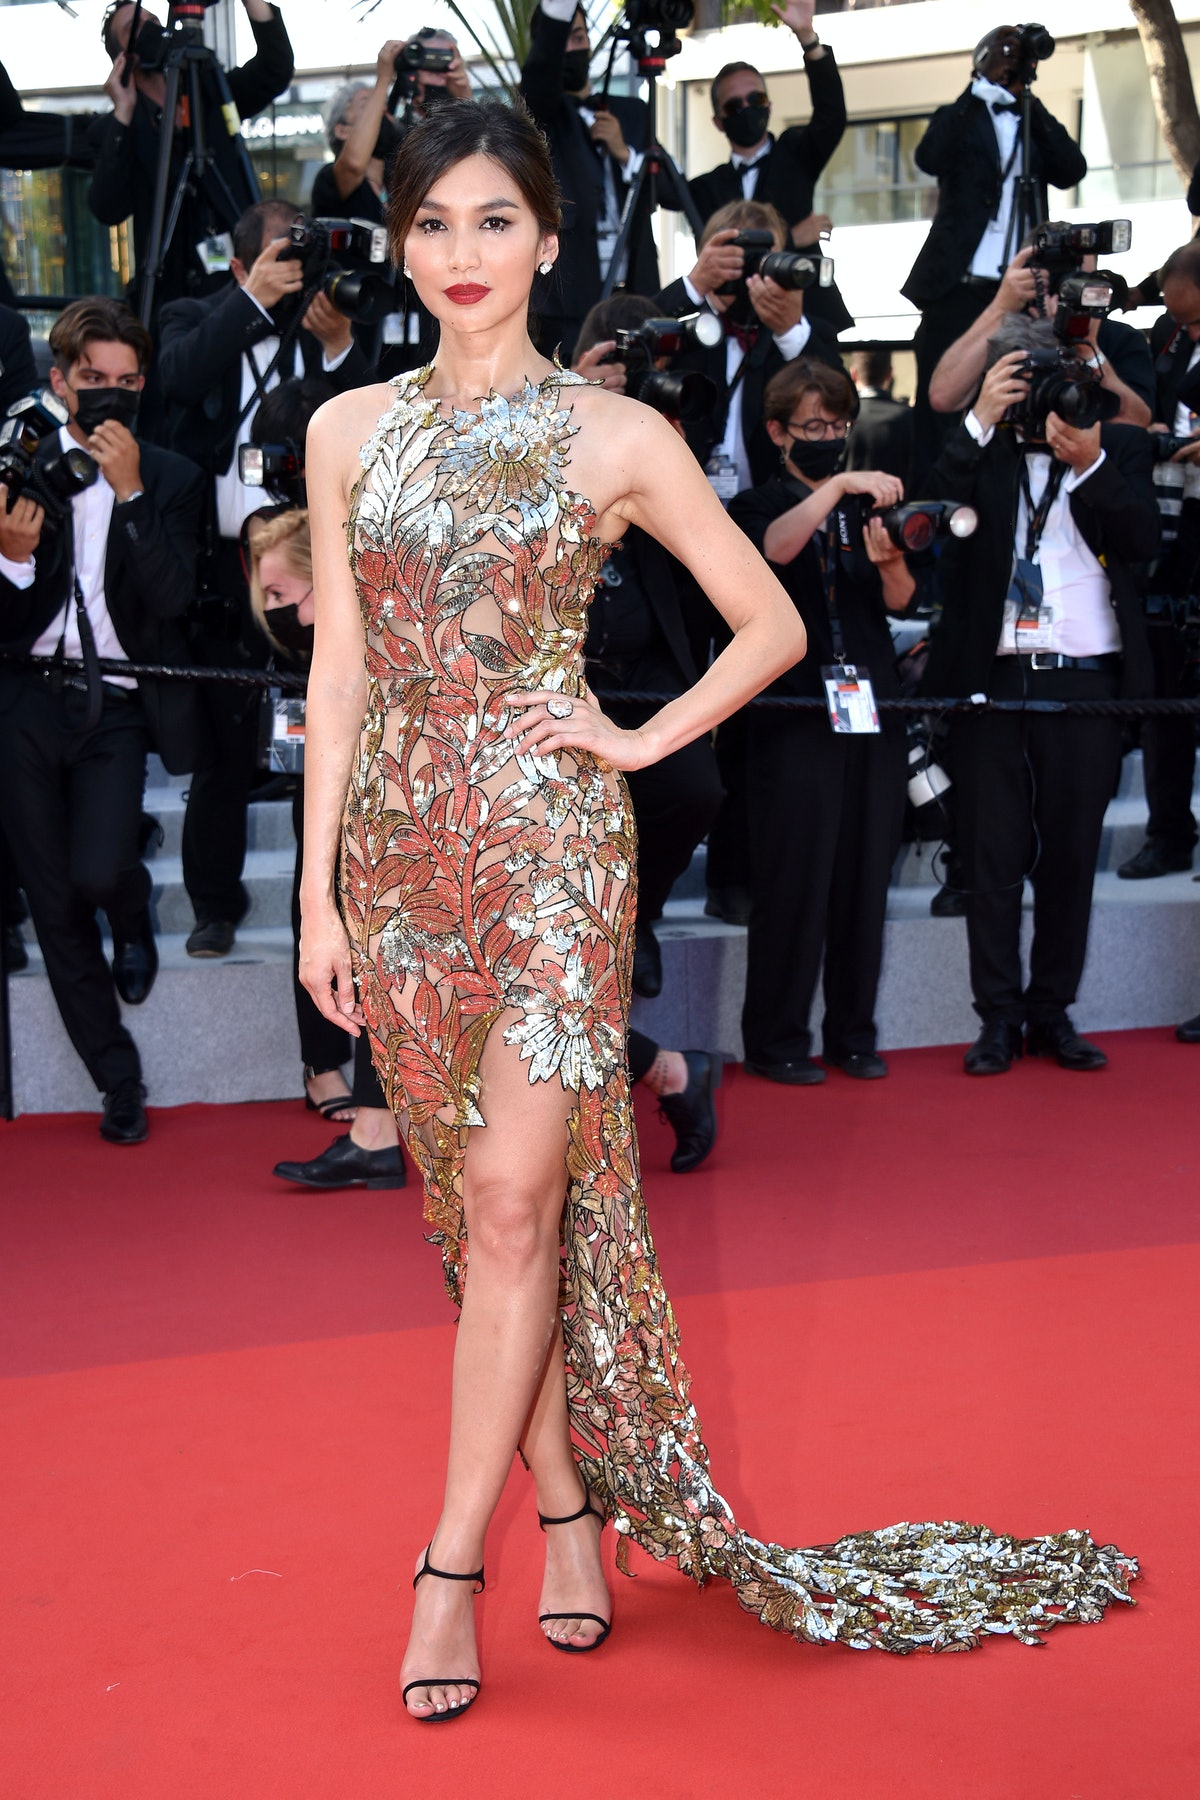 """CANNES, FRANCE - JULY 17: Gemma Chan attends the final screening of """"OSS 117: From Africa With Love"""" and closing ceremony during the 74th annual Cannes Film Festival on July 17, 2021 in Cannes, France. (Photo by Lionel Hahn/Getty Images)"""